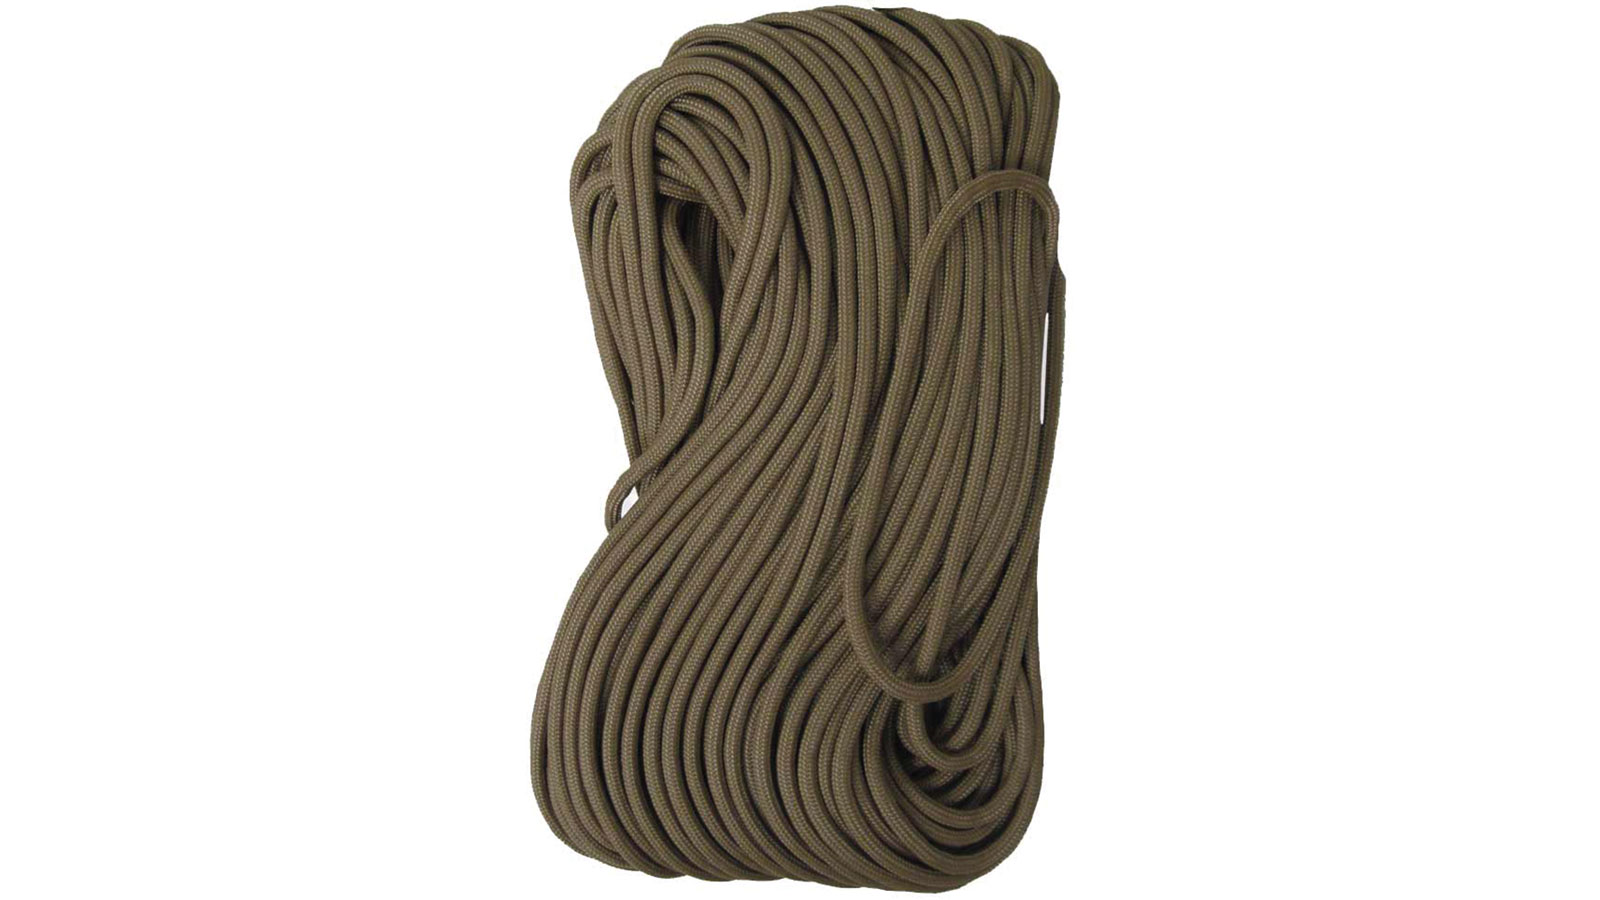 Tac Shield 550 CORD COYOTE 100FT 7 STR